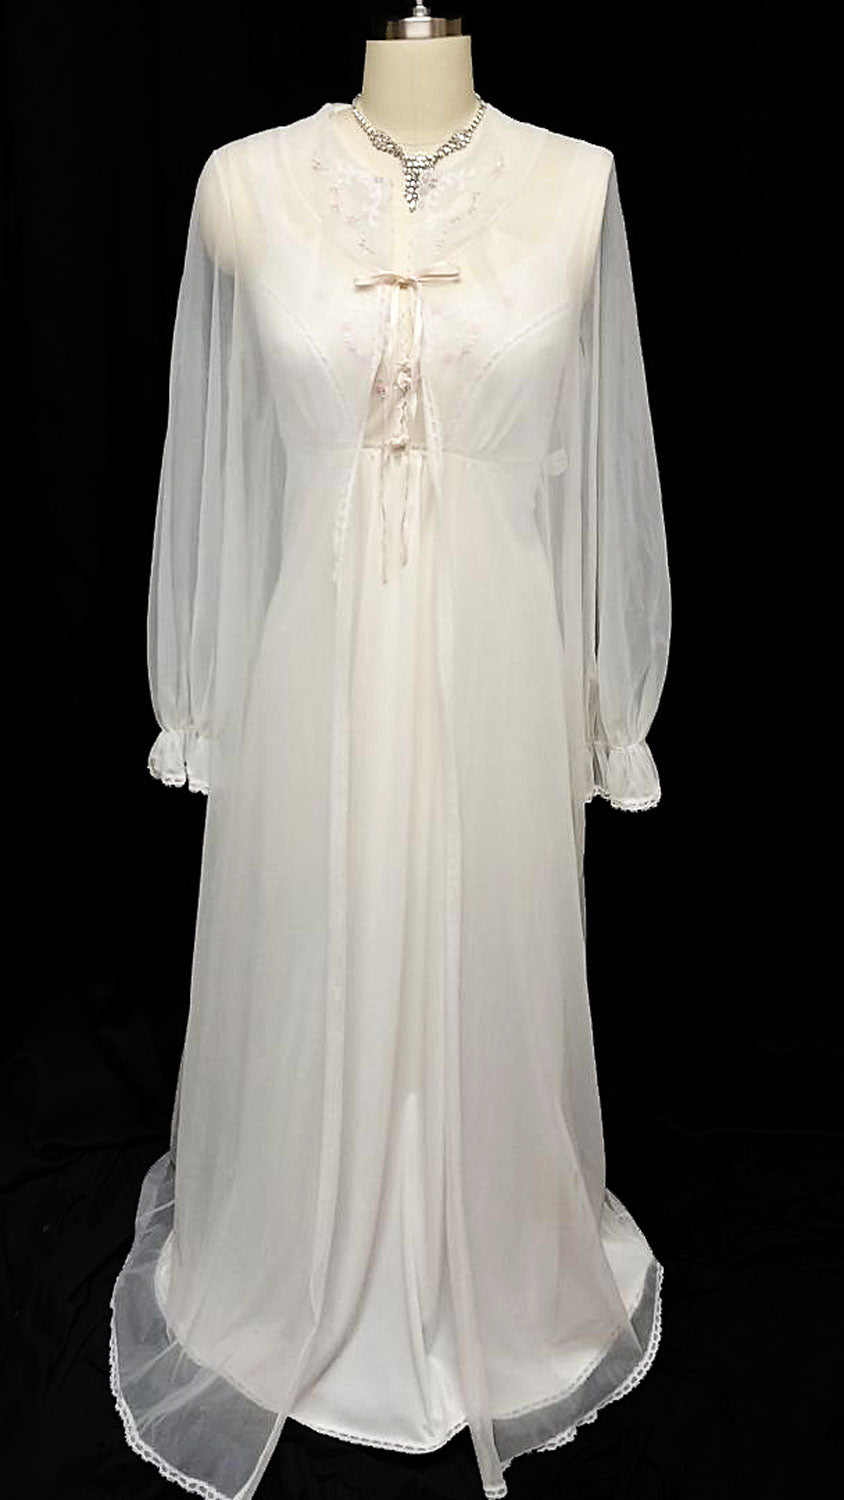 Mad Men gown Vintage off white Vanity Fair sz 34Small romantic night gown bride/'s ivory Old Hollywood night gown wedding night lingerie